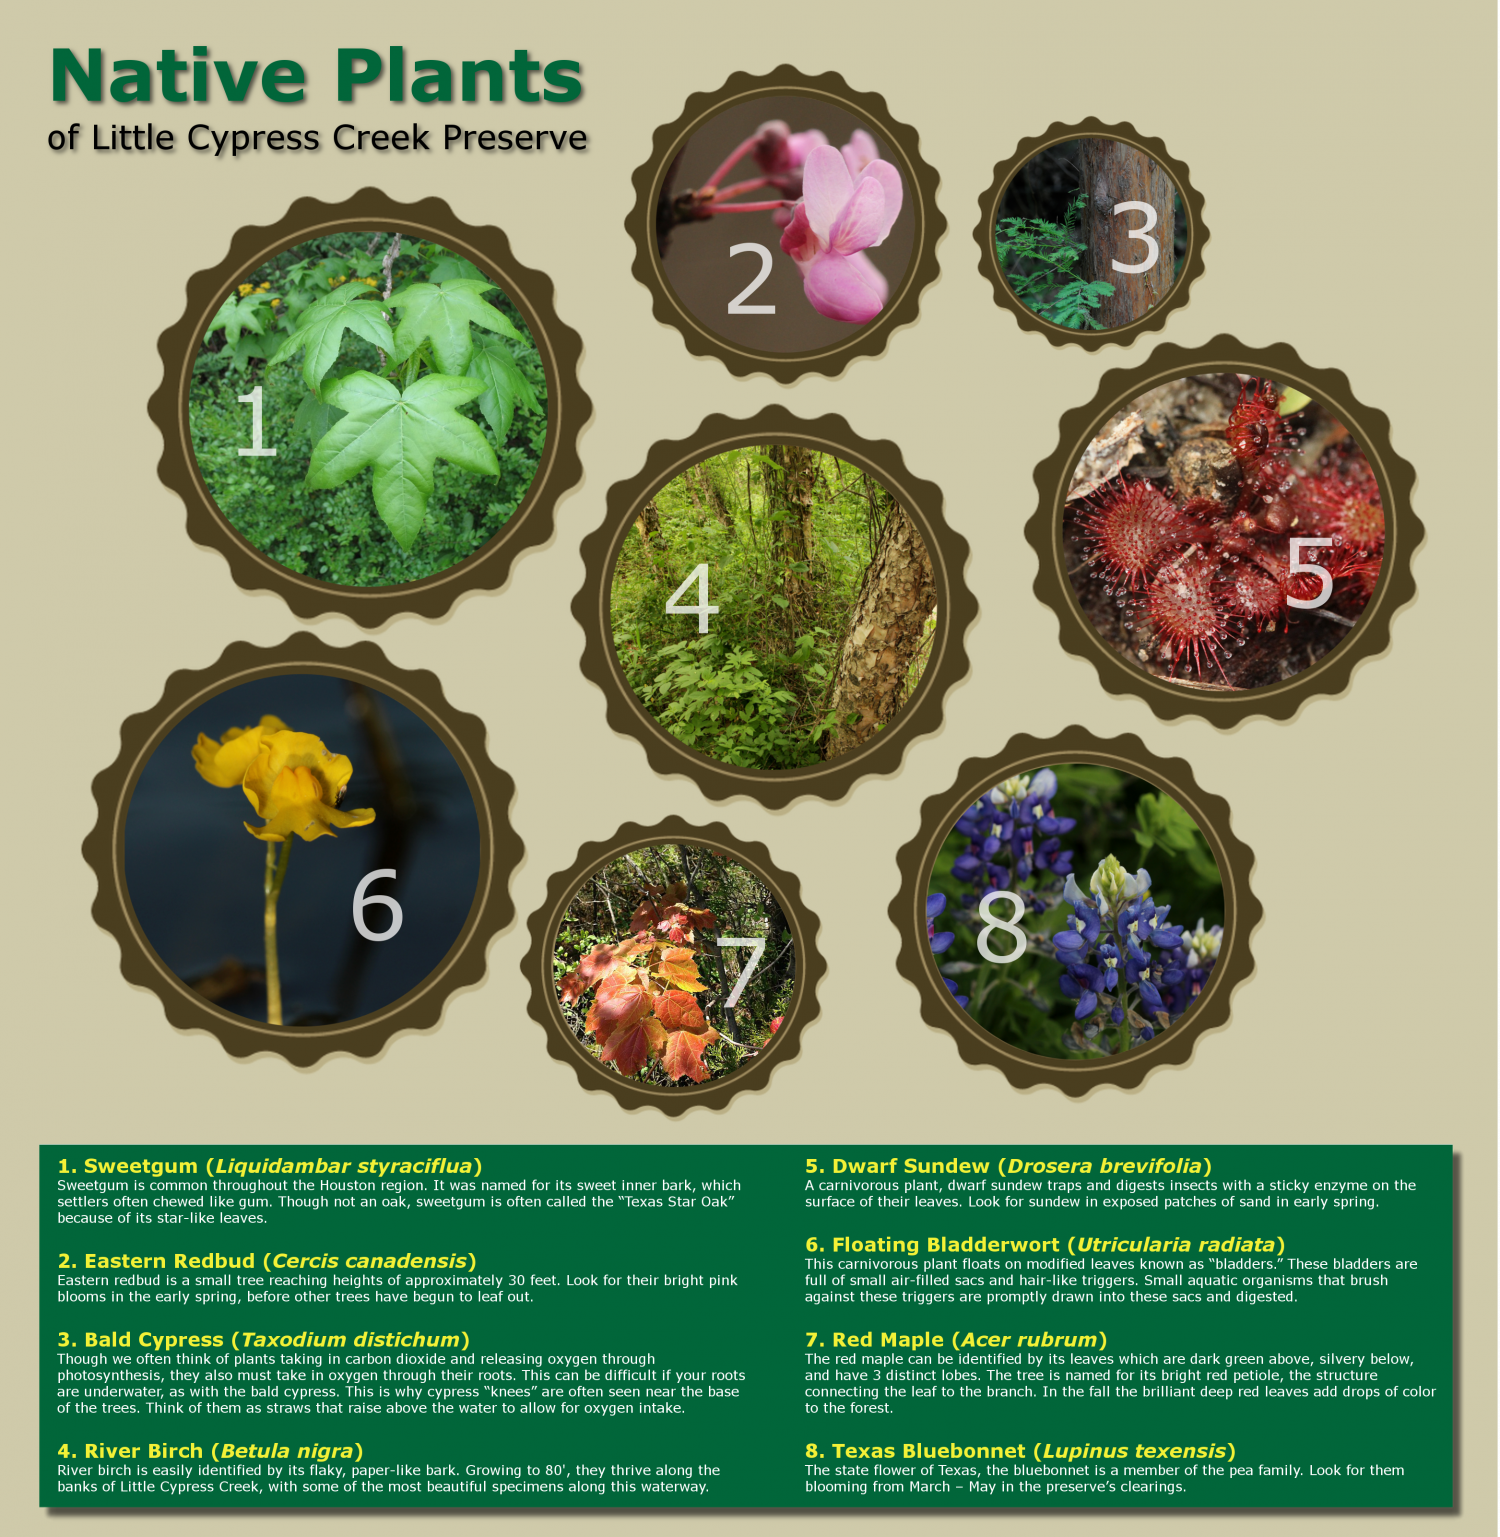 Native Plants of Little Cypress Creek Preserve Infographic